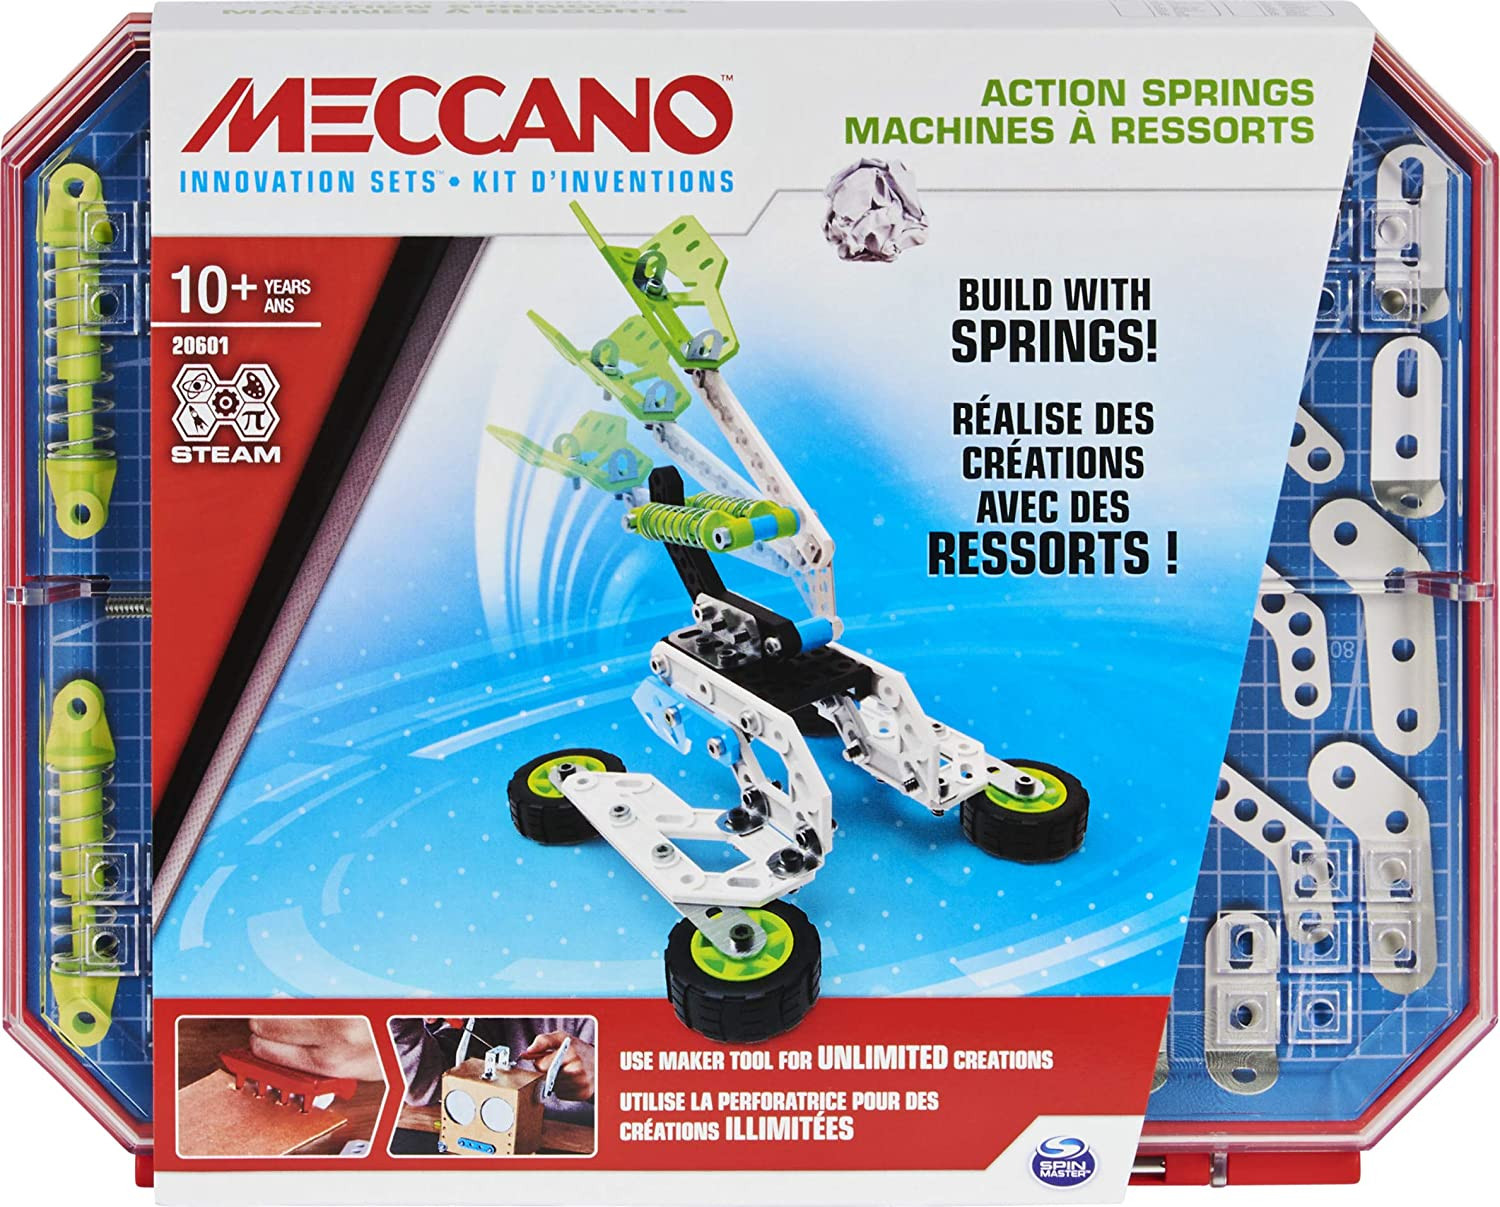 Meccano KIT D'NVENTIONS - RESSORTS Kits d'Inventions